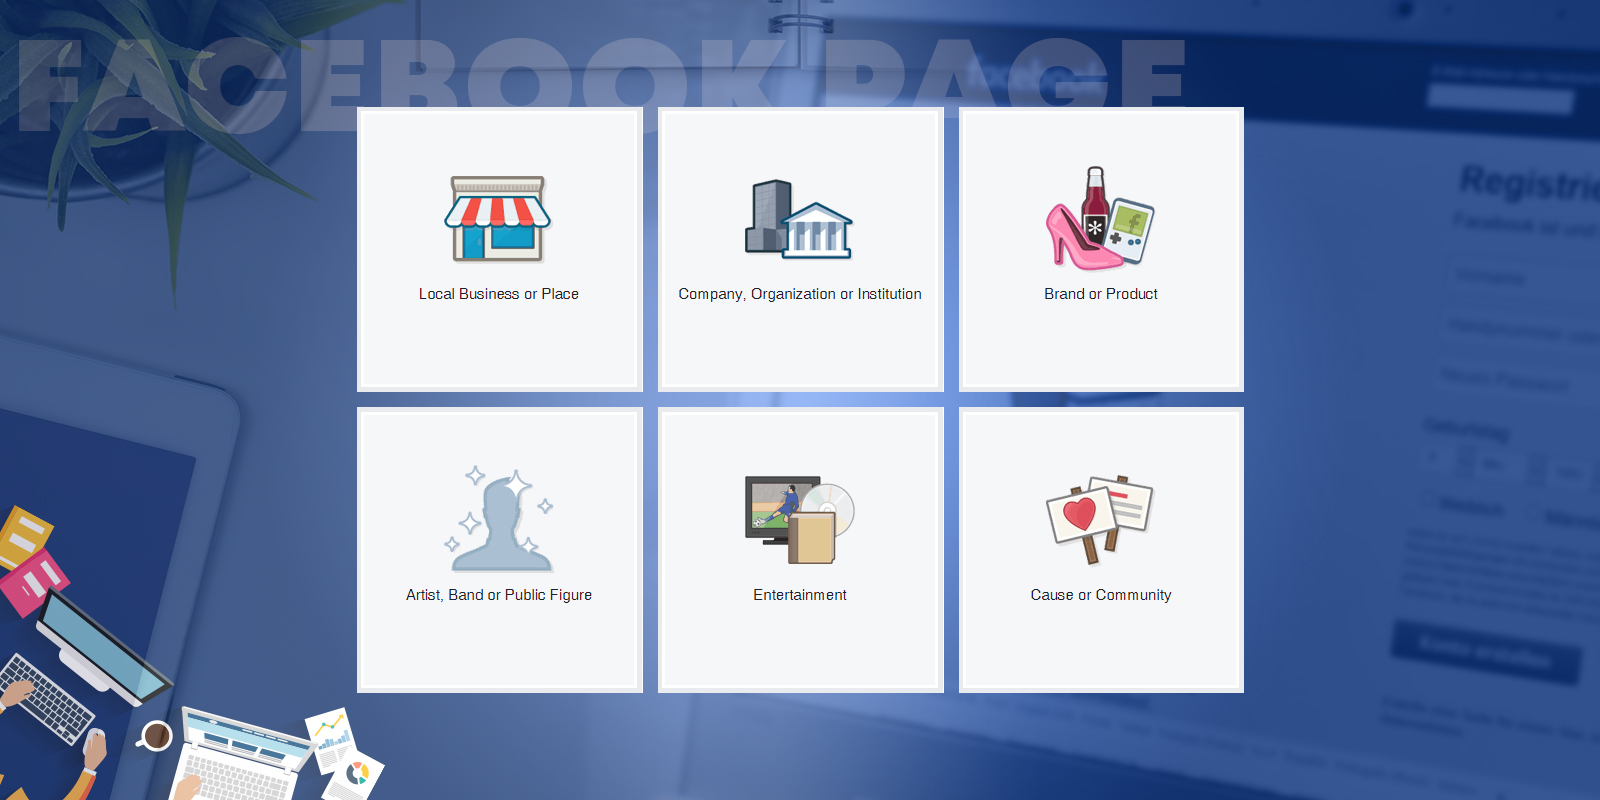 Facebook Page Types – Select the Best Category for Your Business